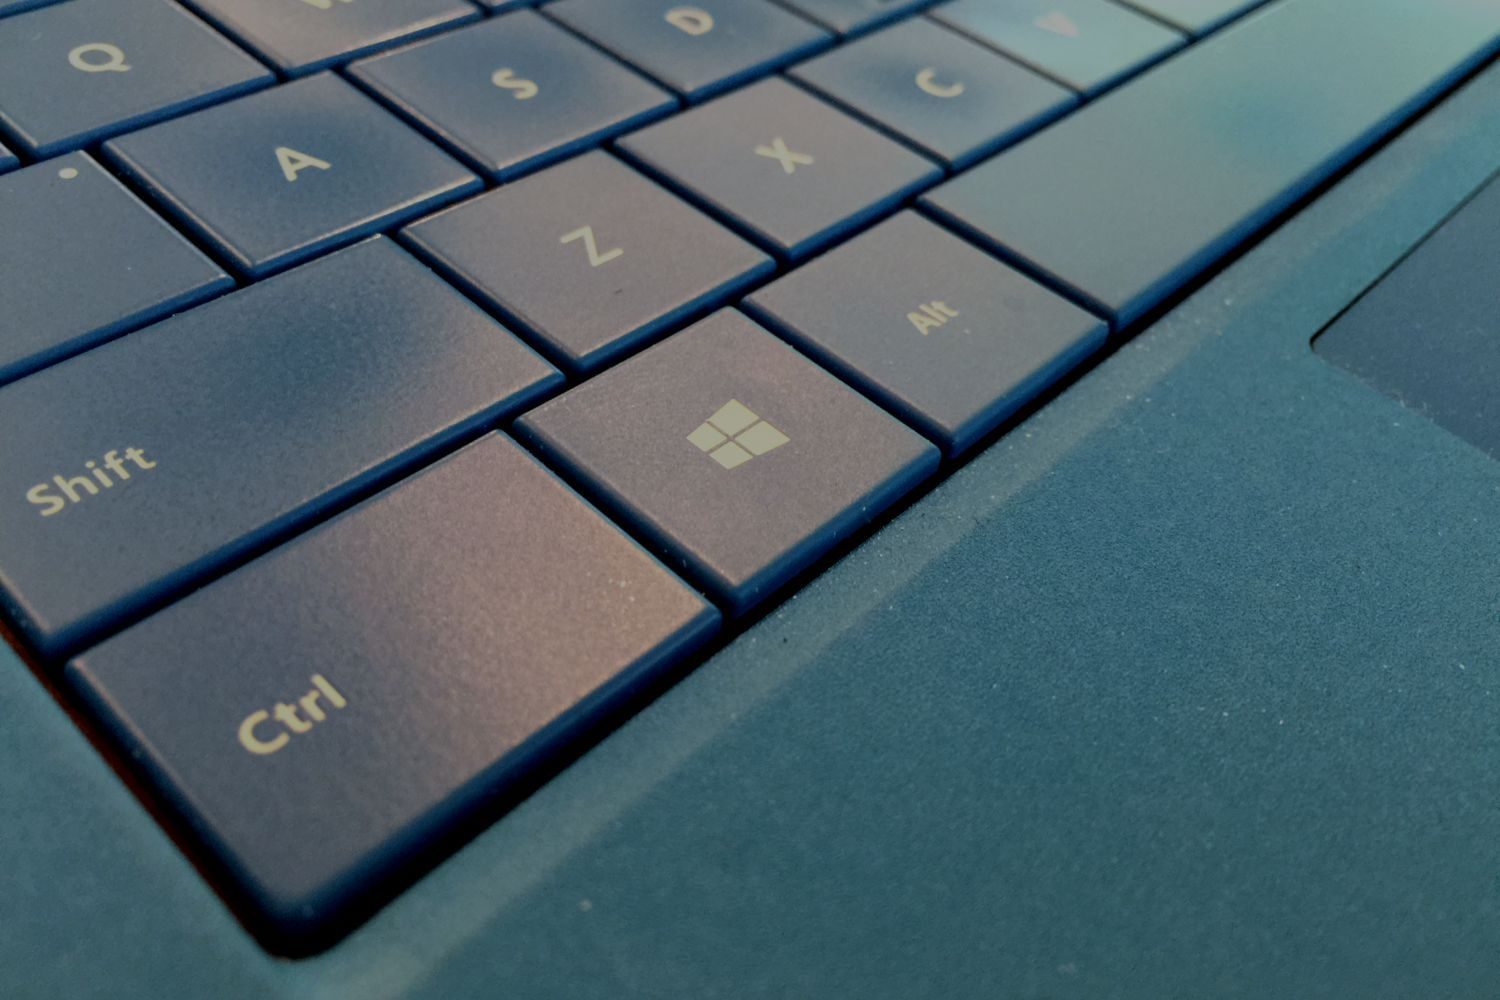 Cheat Sheet Microsoft Releases Printable Windows 10 Key Shortcut